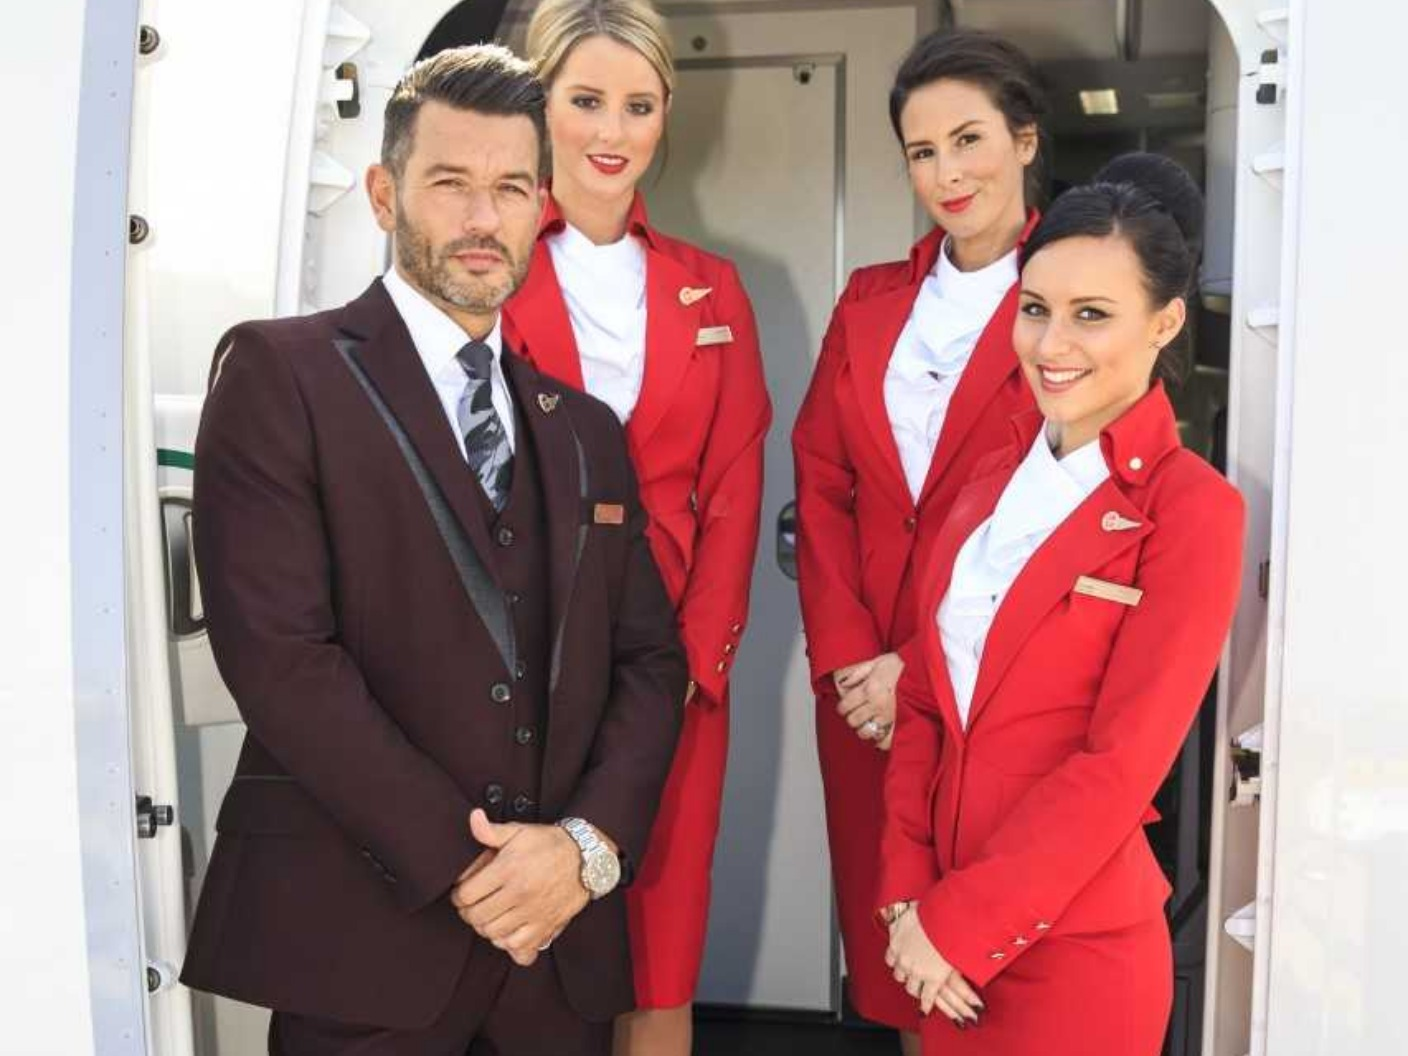 Virgin Atlantic female cabin crew no longer required to wear